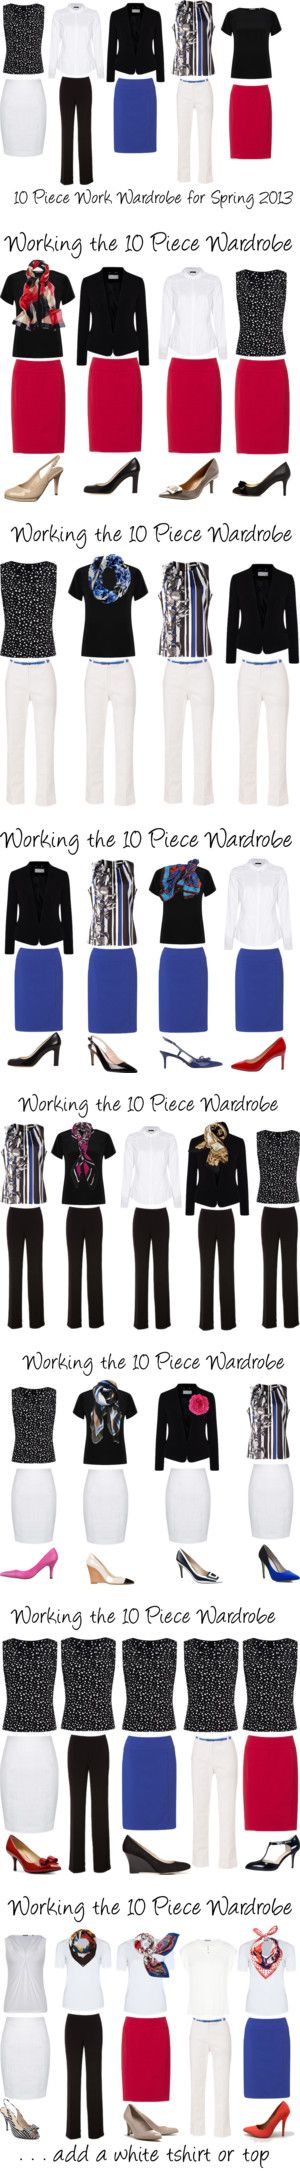 Working the 10 Piece Wardrobe ~ Spring 2013 by annabouttown on Polyvore…: